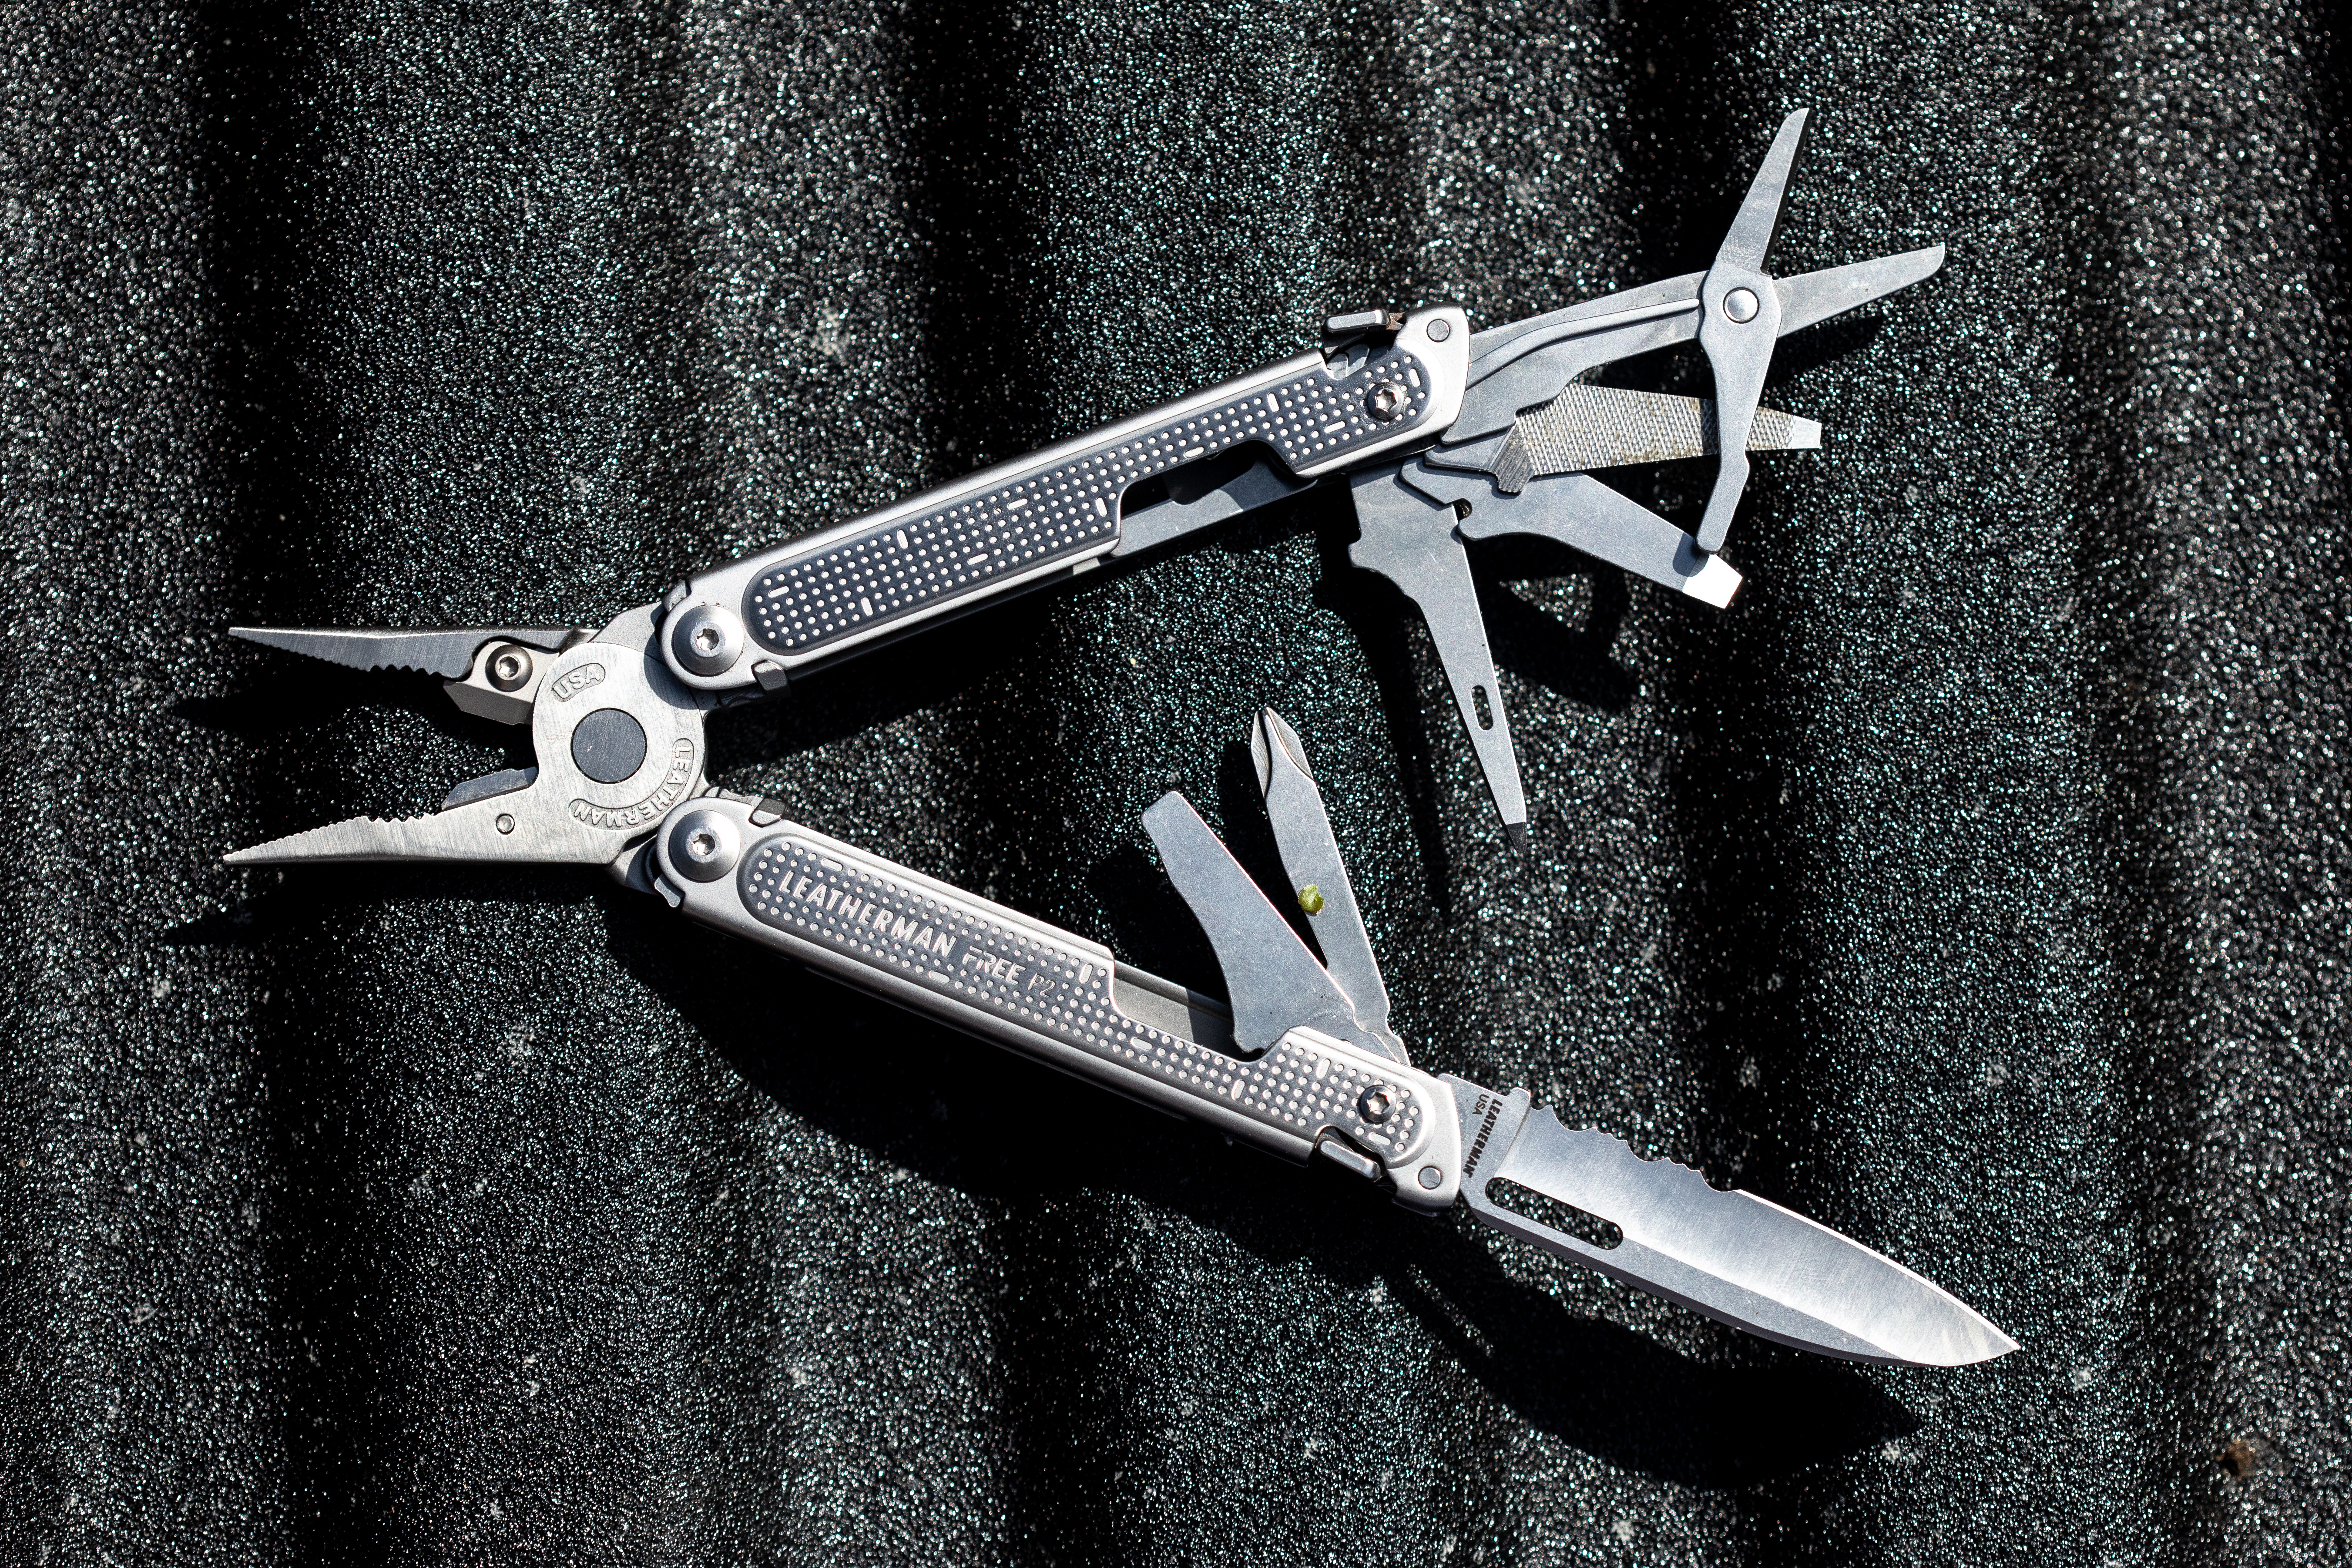 Magnets make the Leatherman Free P2 multitool shockingly easy to use one-handed